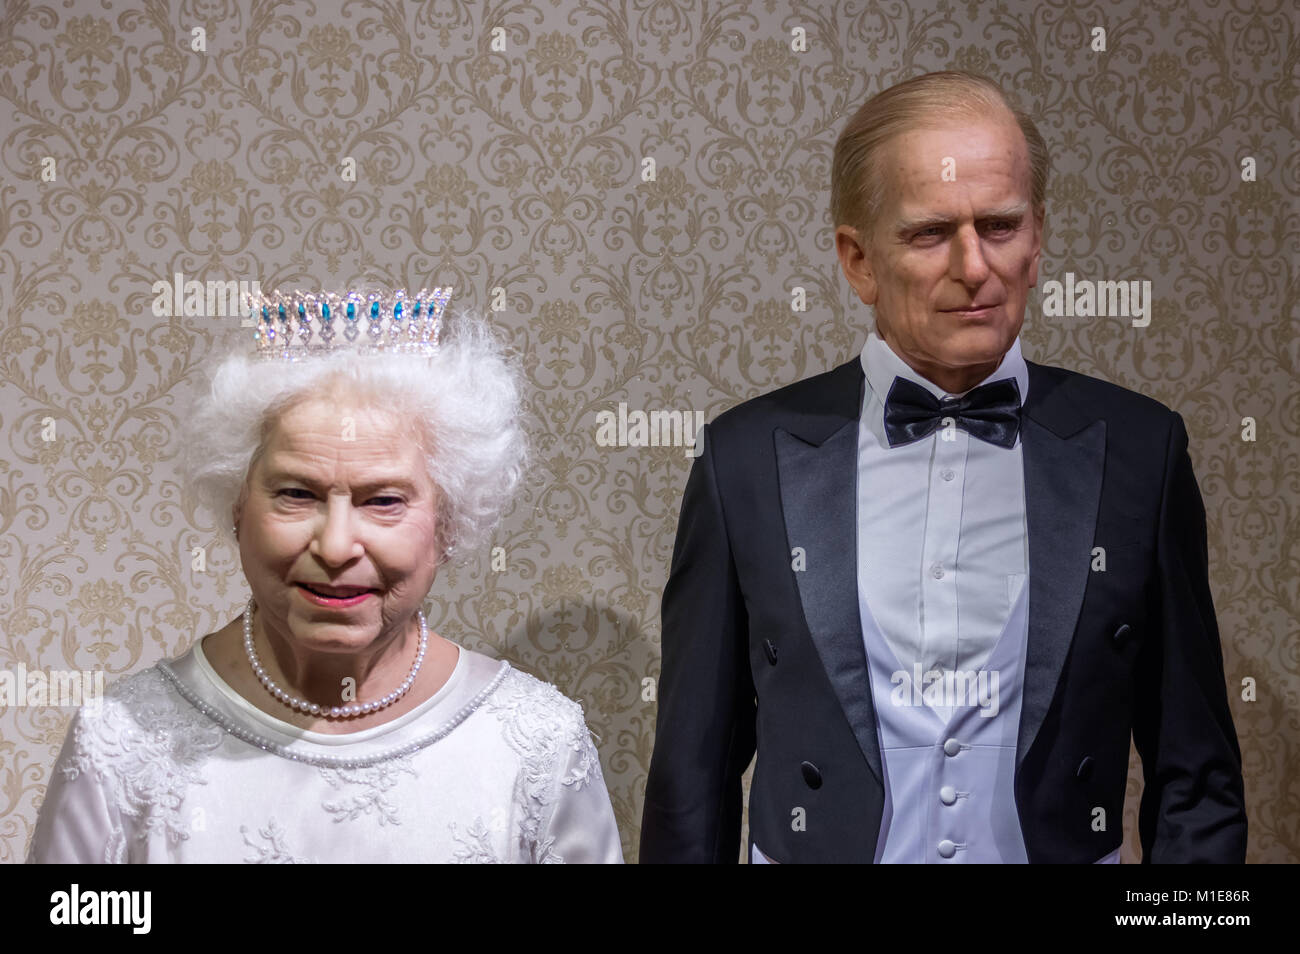 Wax statues of Queen Elizabeth II and Prince Philip at the Krakow Wax Museum - Cracow, Poland. - Stock Image